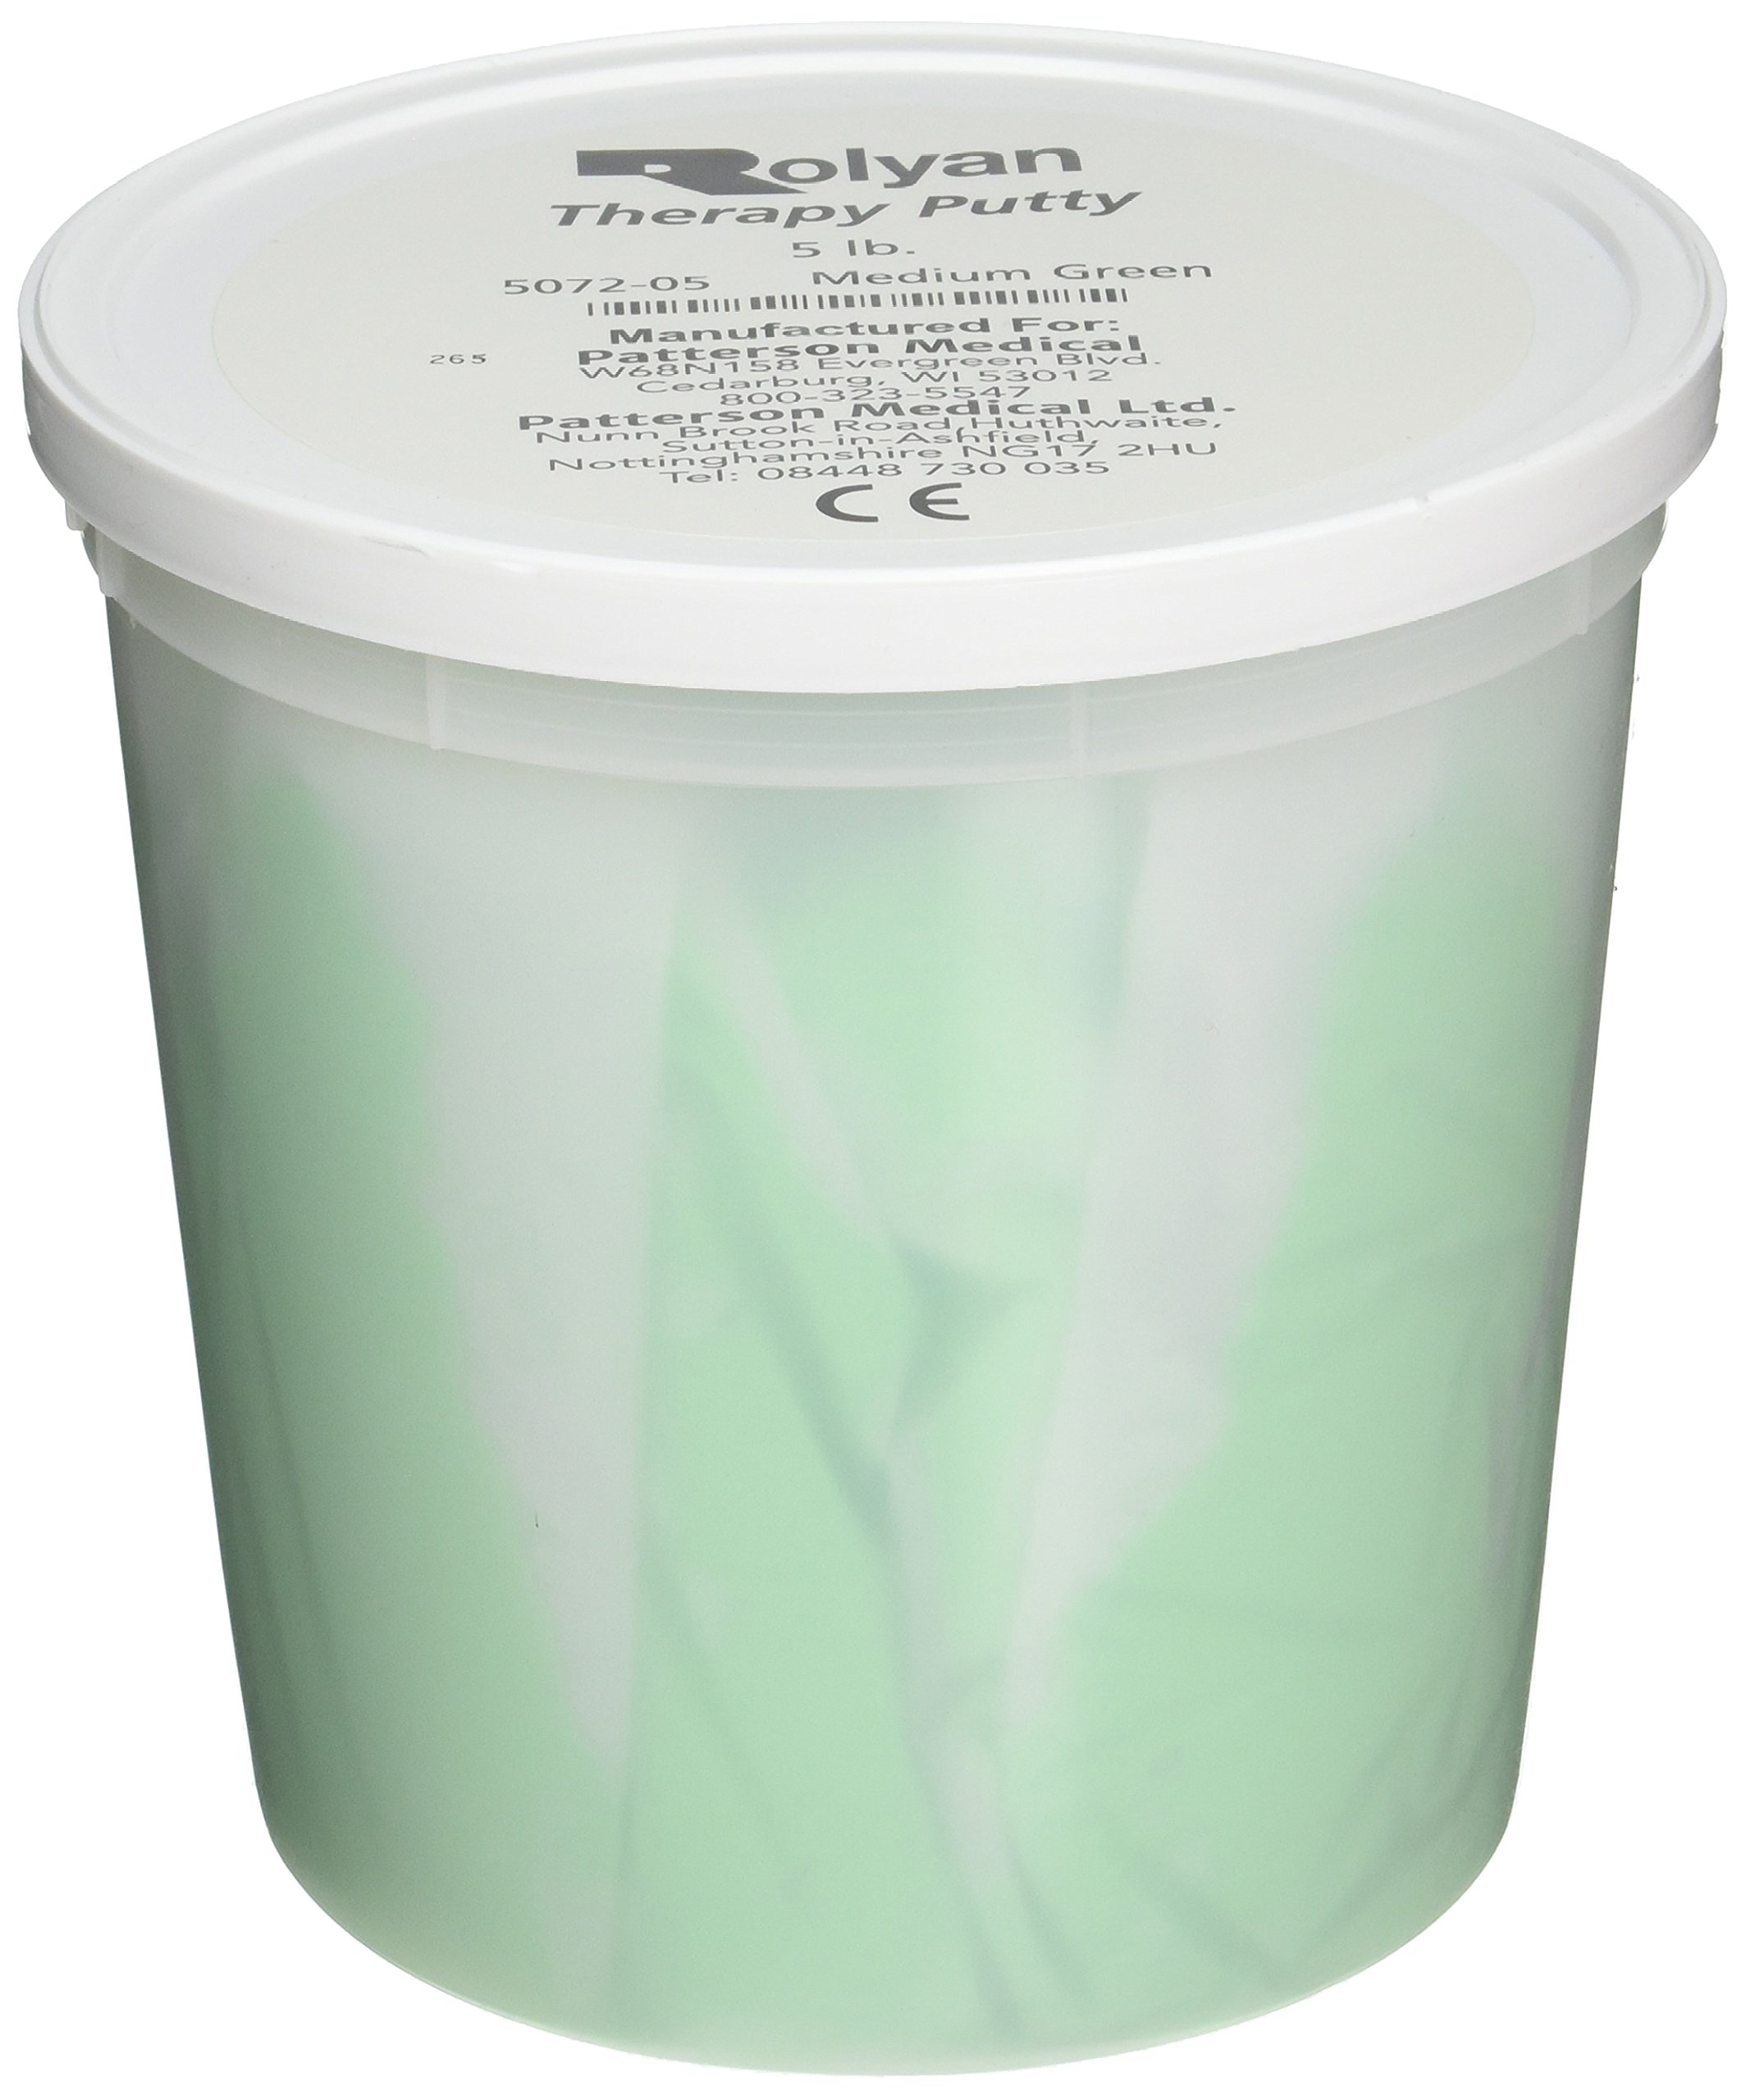 Sammons Preston Therapy Putty for Physical Therapeutic Hand Exercises, Flexible Putty for Finger and Hand Recovery and Rehabilitation, Strength Training, Occupational Therapy, 5 Pounds, Medium, Green